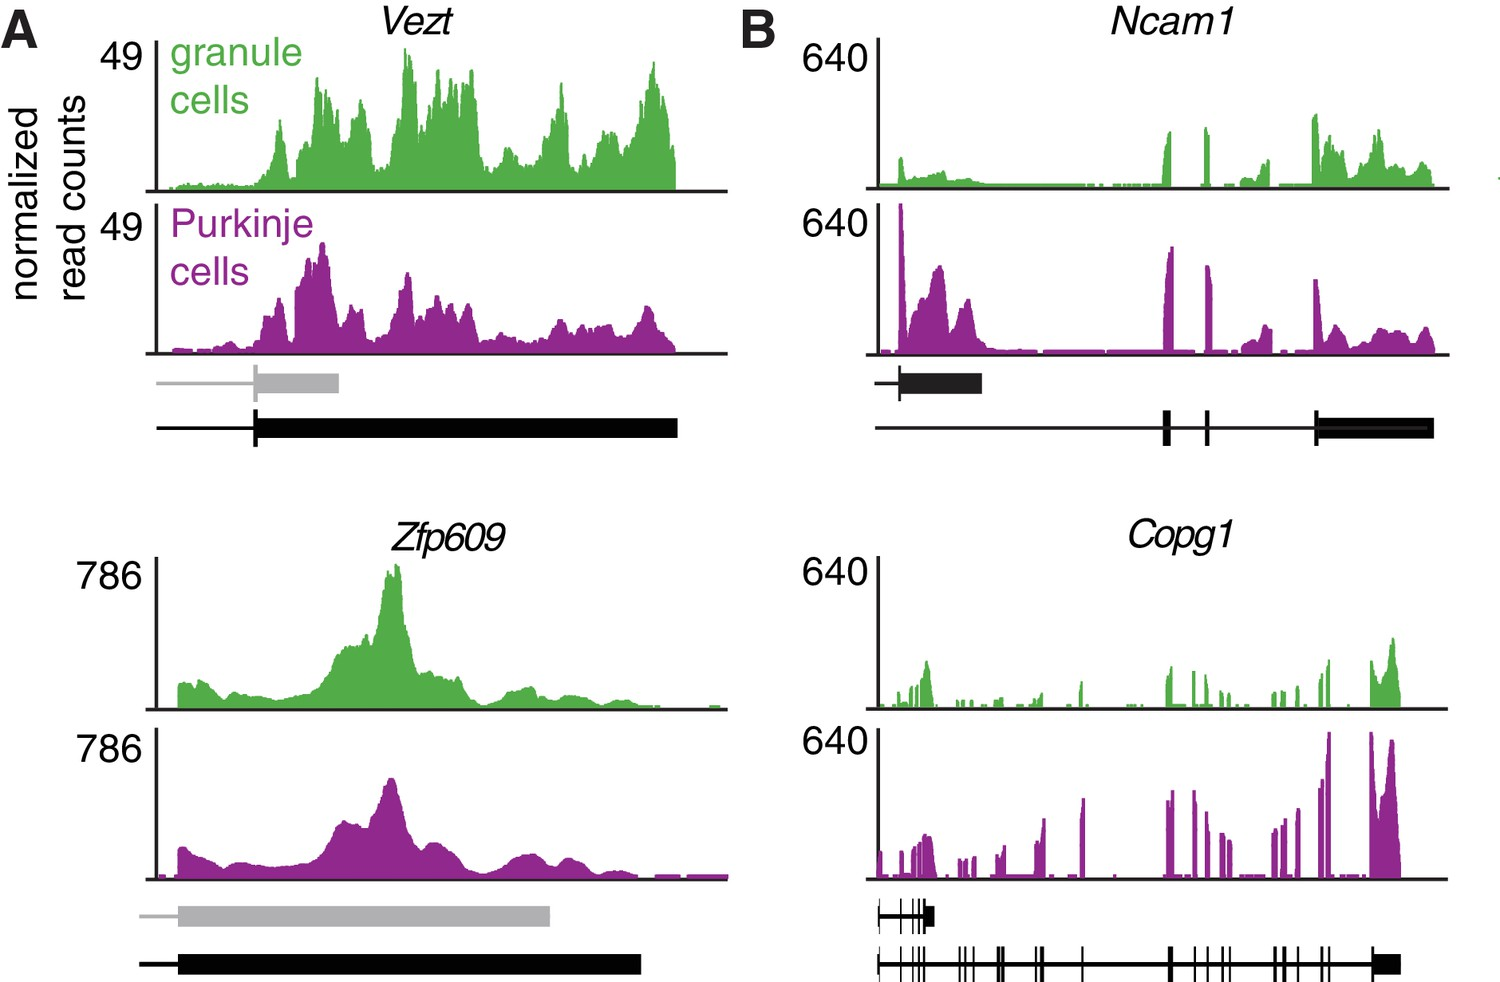 Differential 3' processing of specific transcripts expands